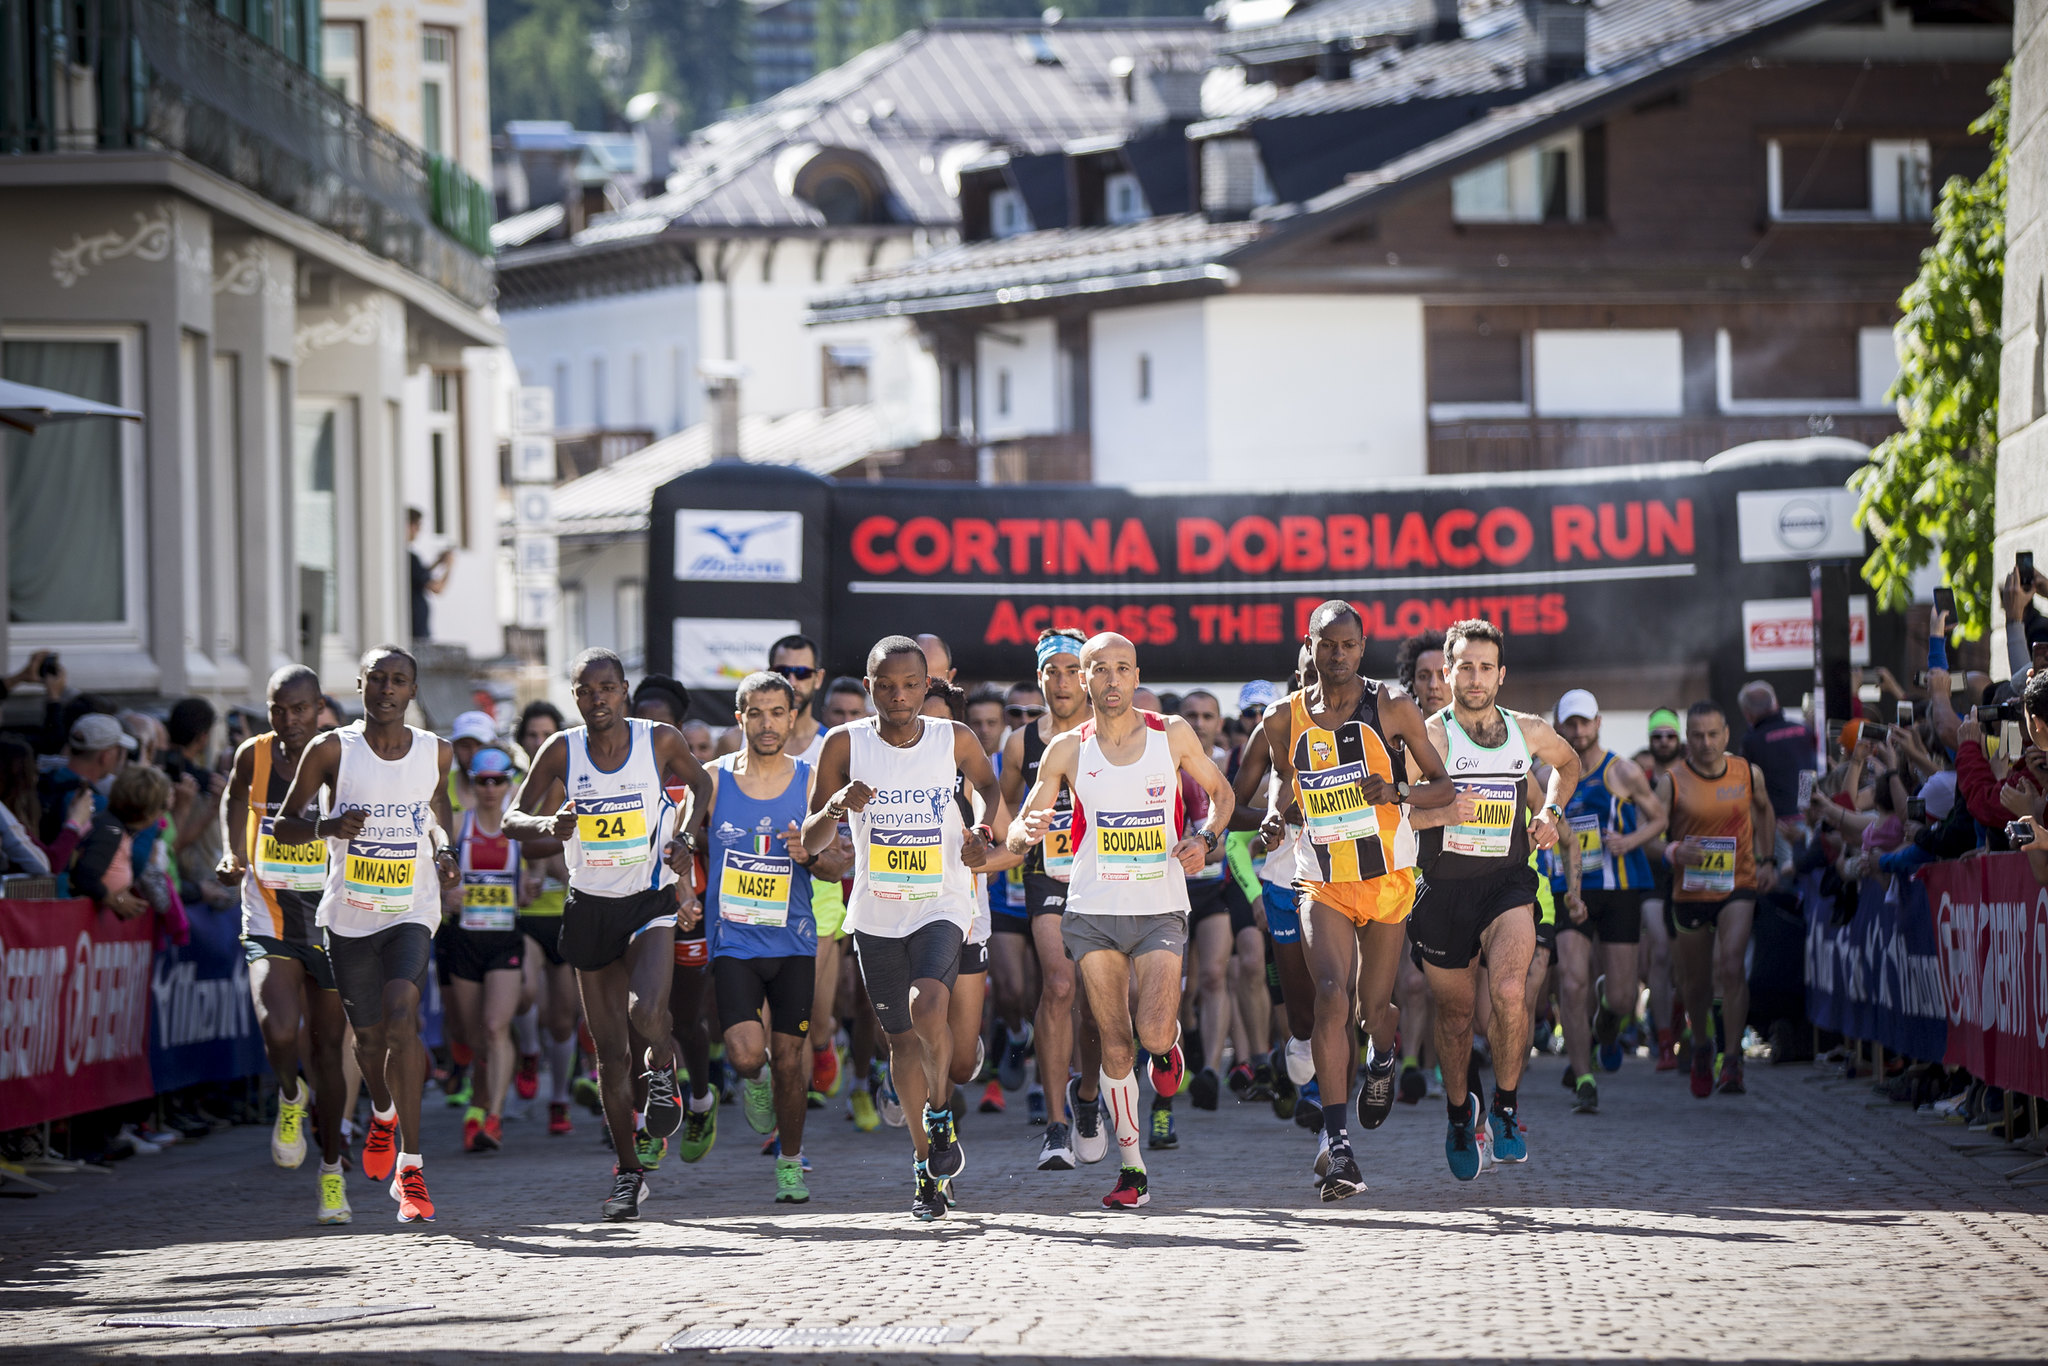 Cortina Dobbiaco Run 2019